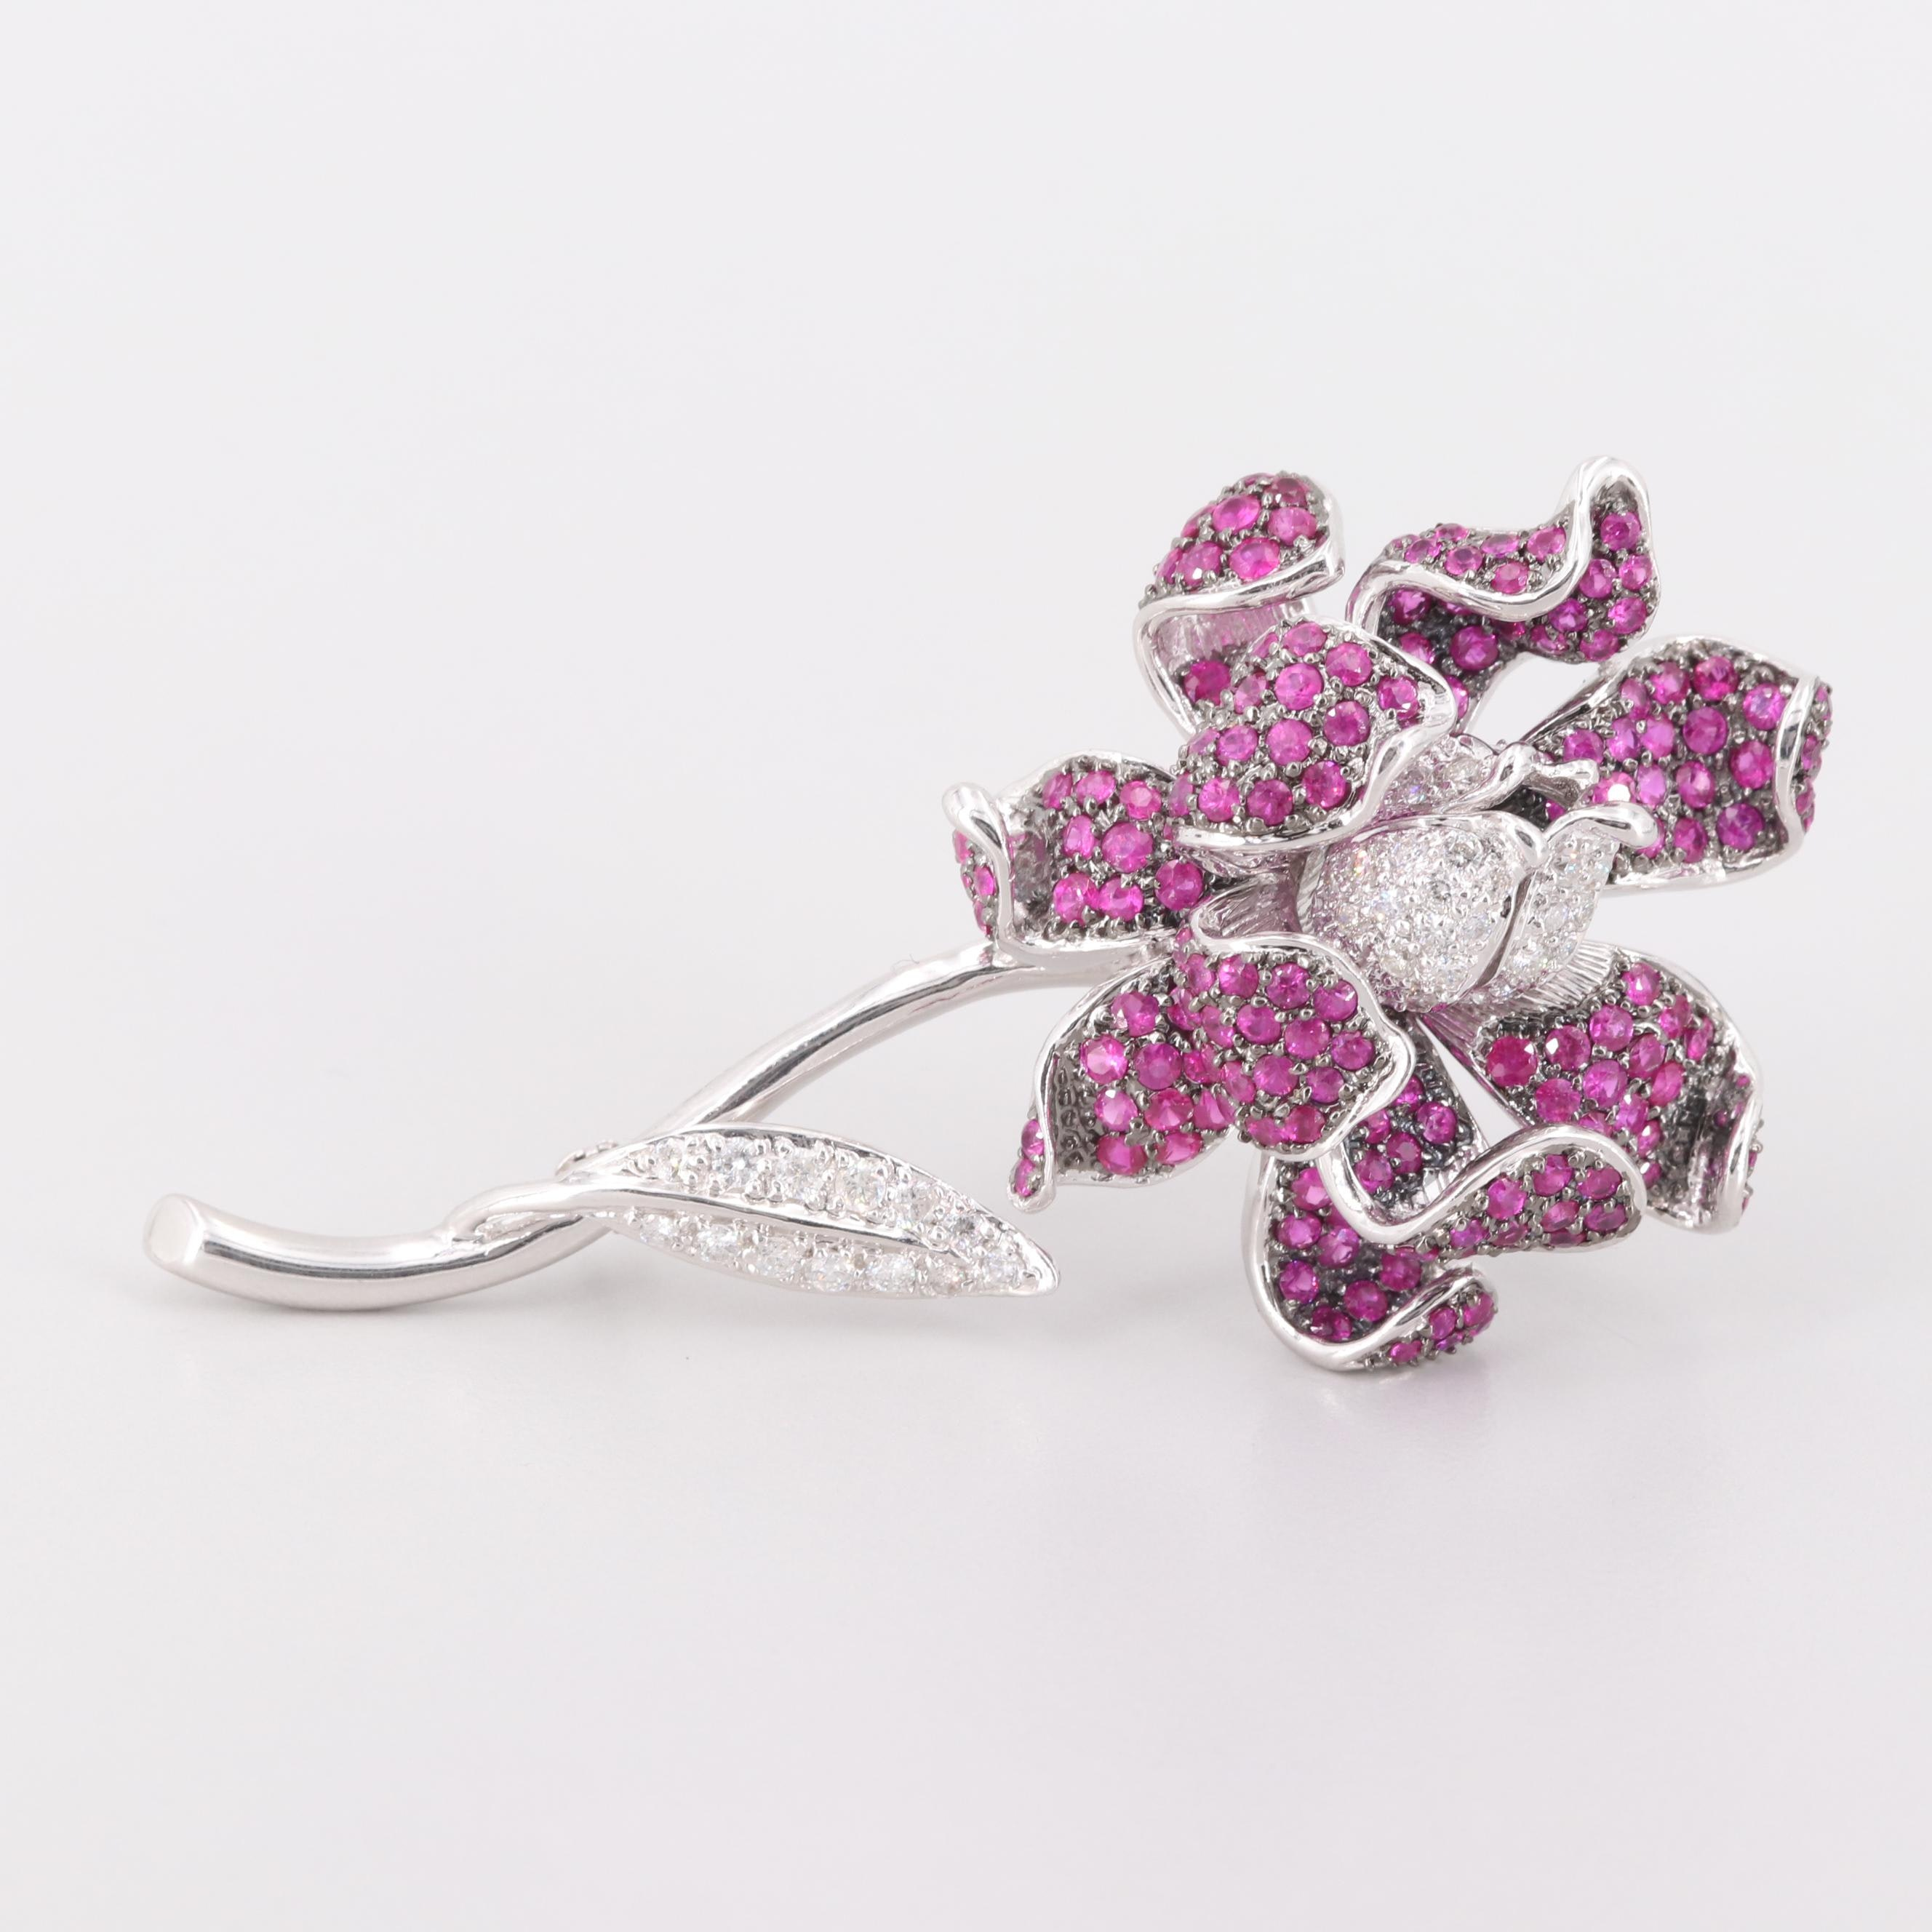 14K White Gold Diamond and Ruby Floral Brooch